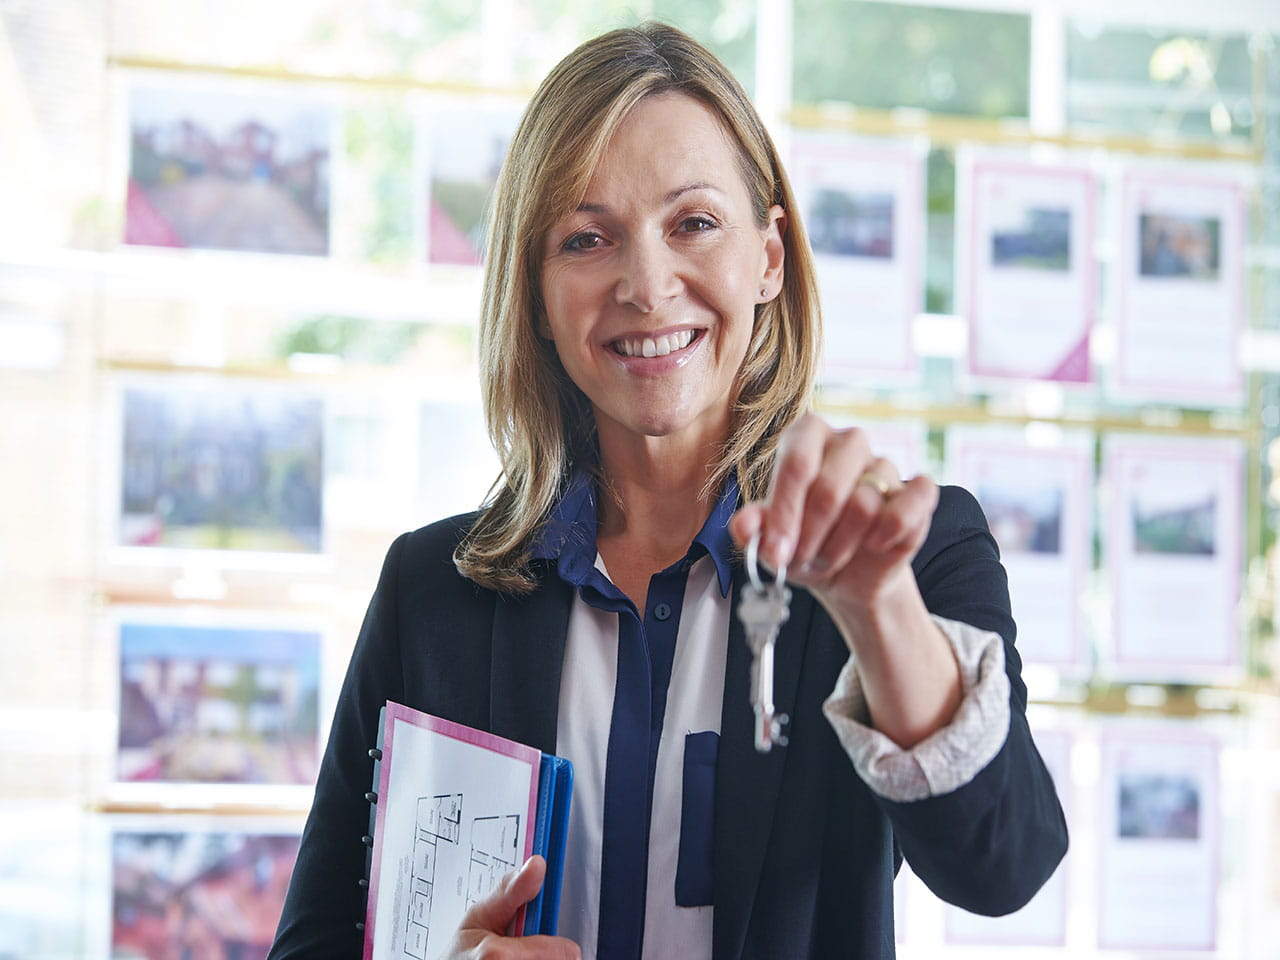 Estate agent holding out keys to a house for sale